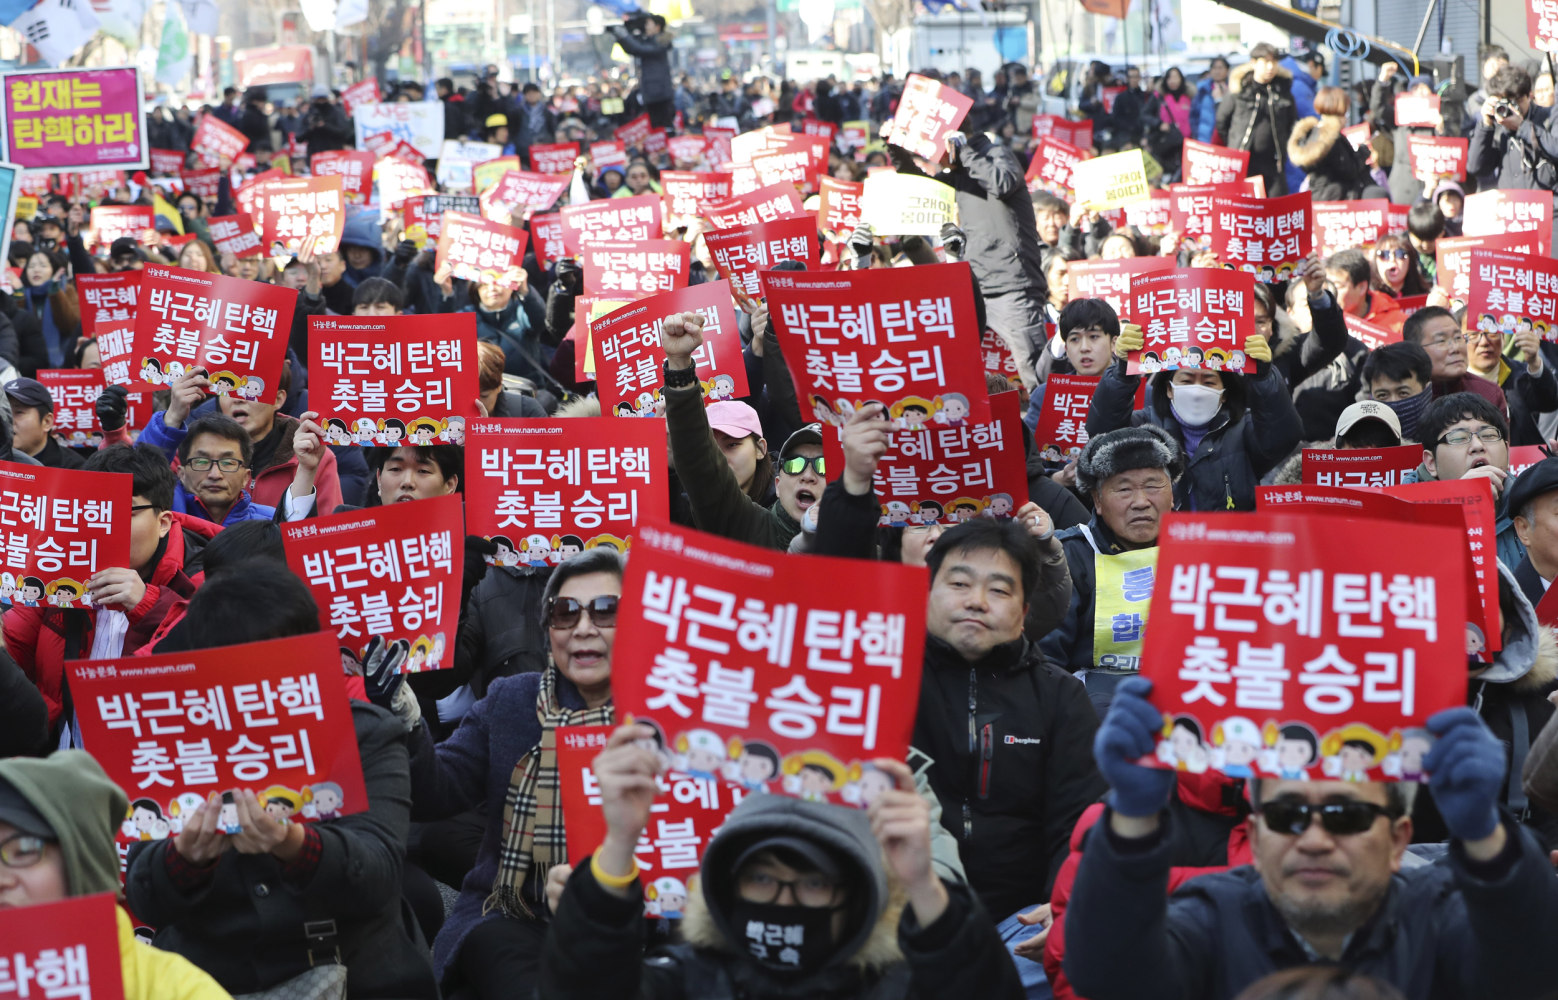 Protests rage as S. Korea's Park yet to vacate presidential residence